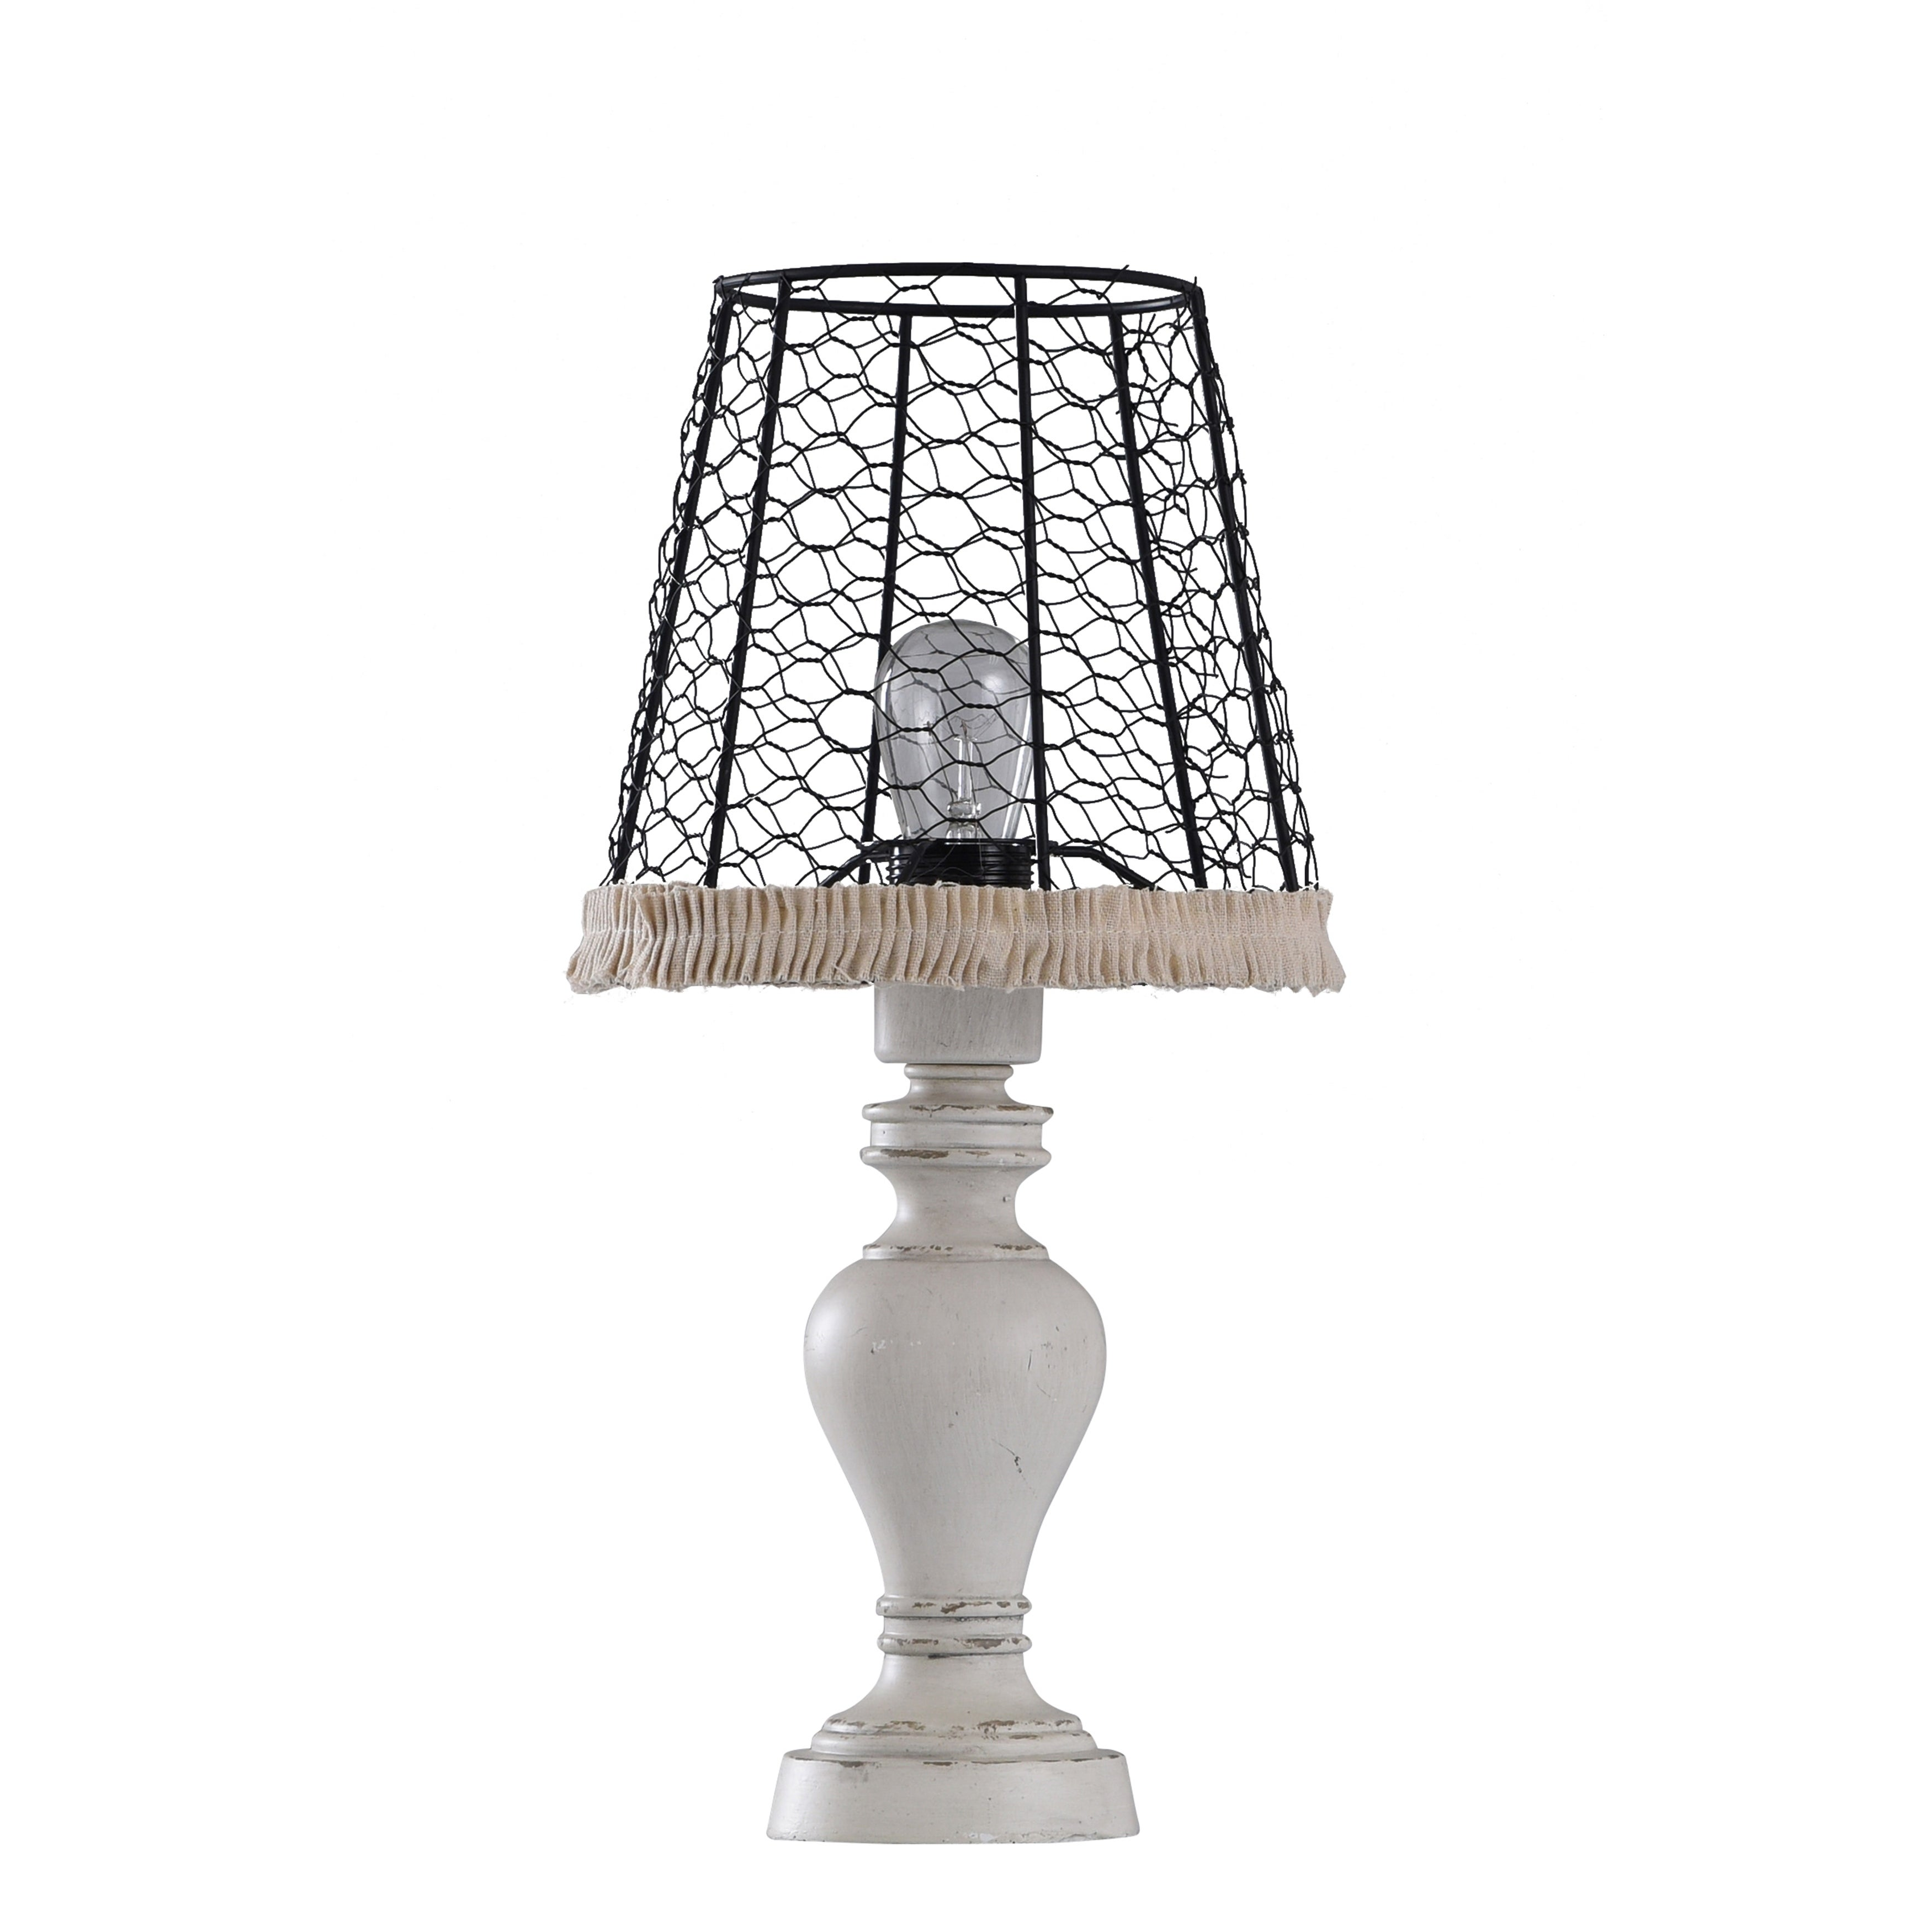 Old White Distress Table Lamp With Black Metal Chicken Wire Shade And Tan Ruffle Fabric Trim Overstock 26483306